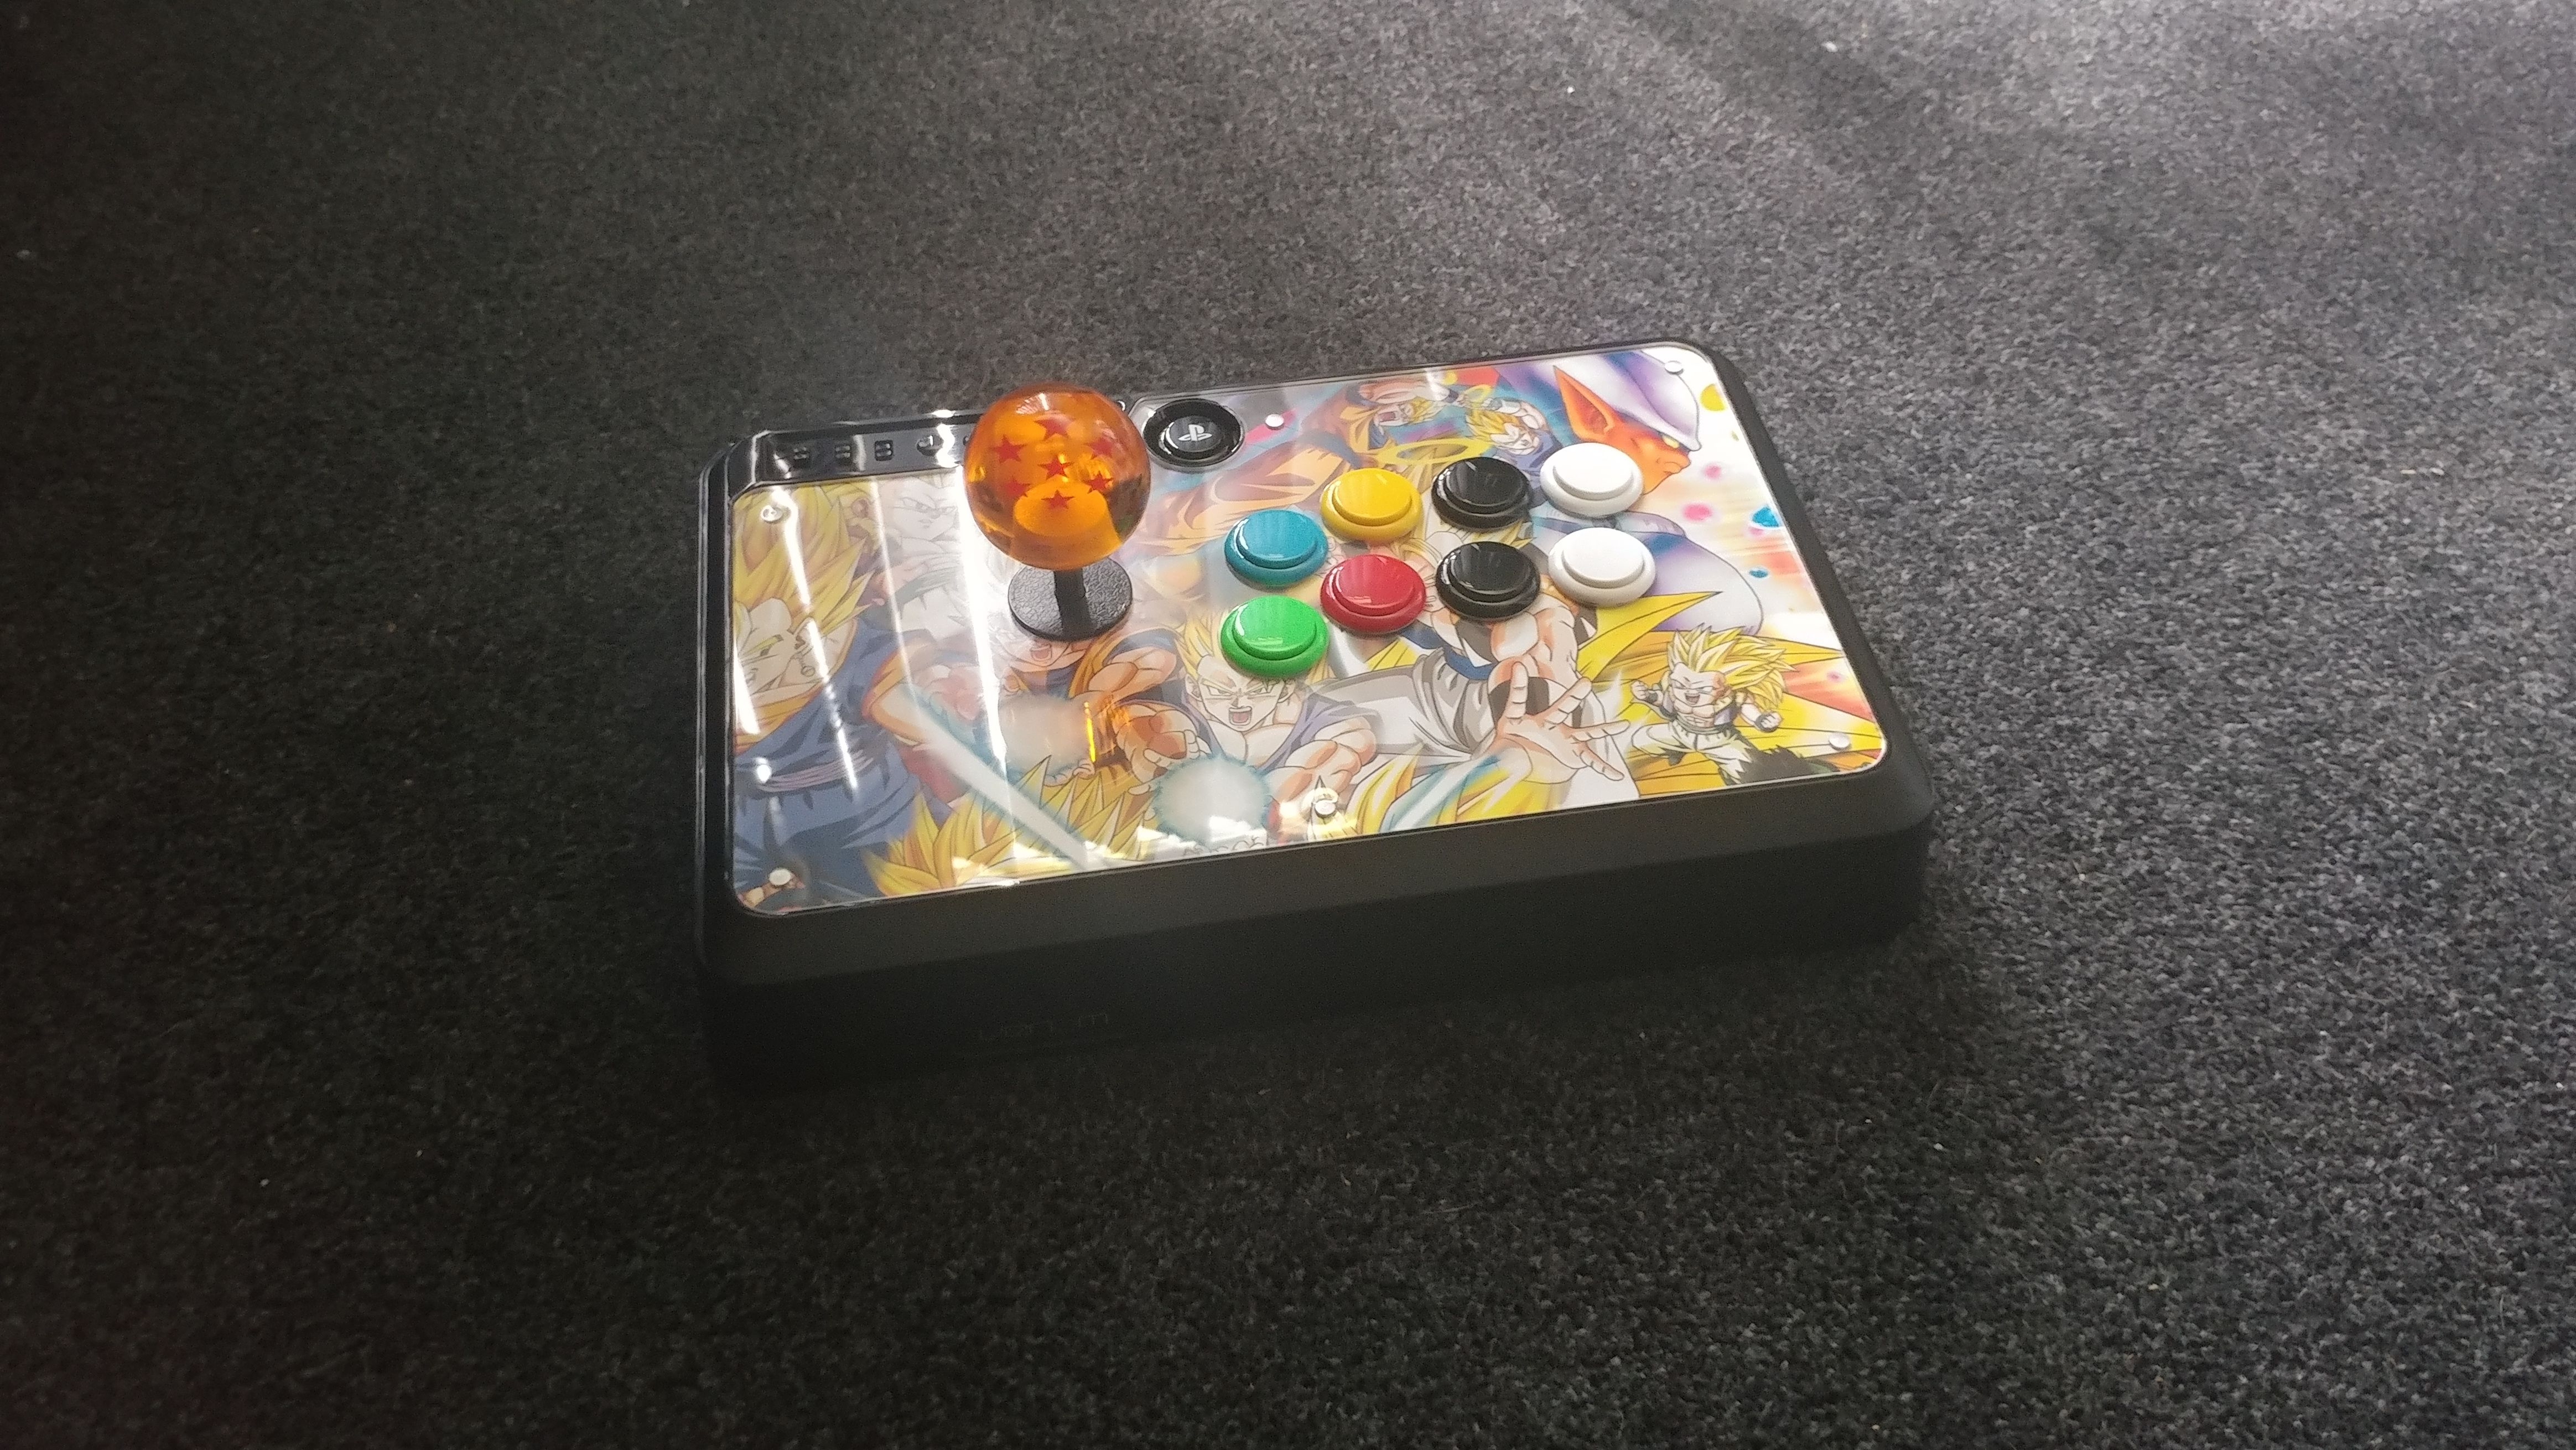 Modded my old arcade stick with sanwa parts and dragon ball theme